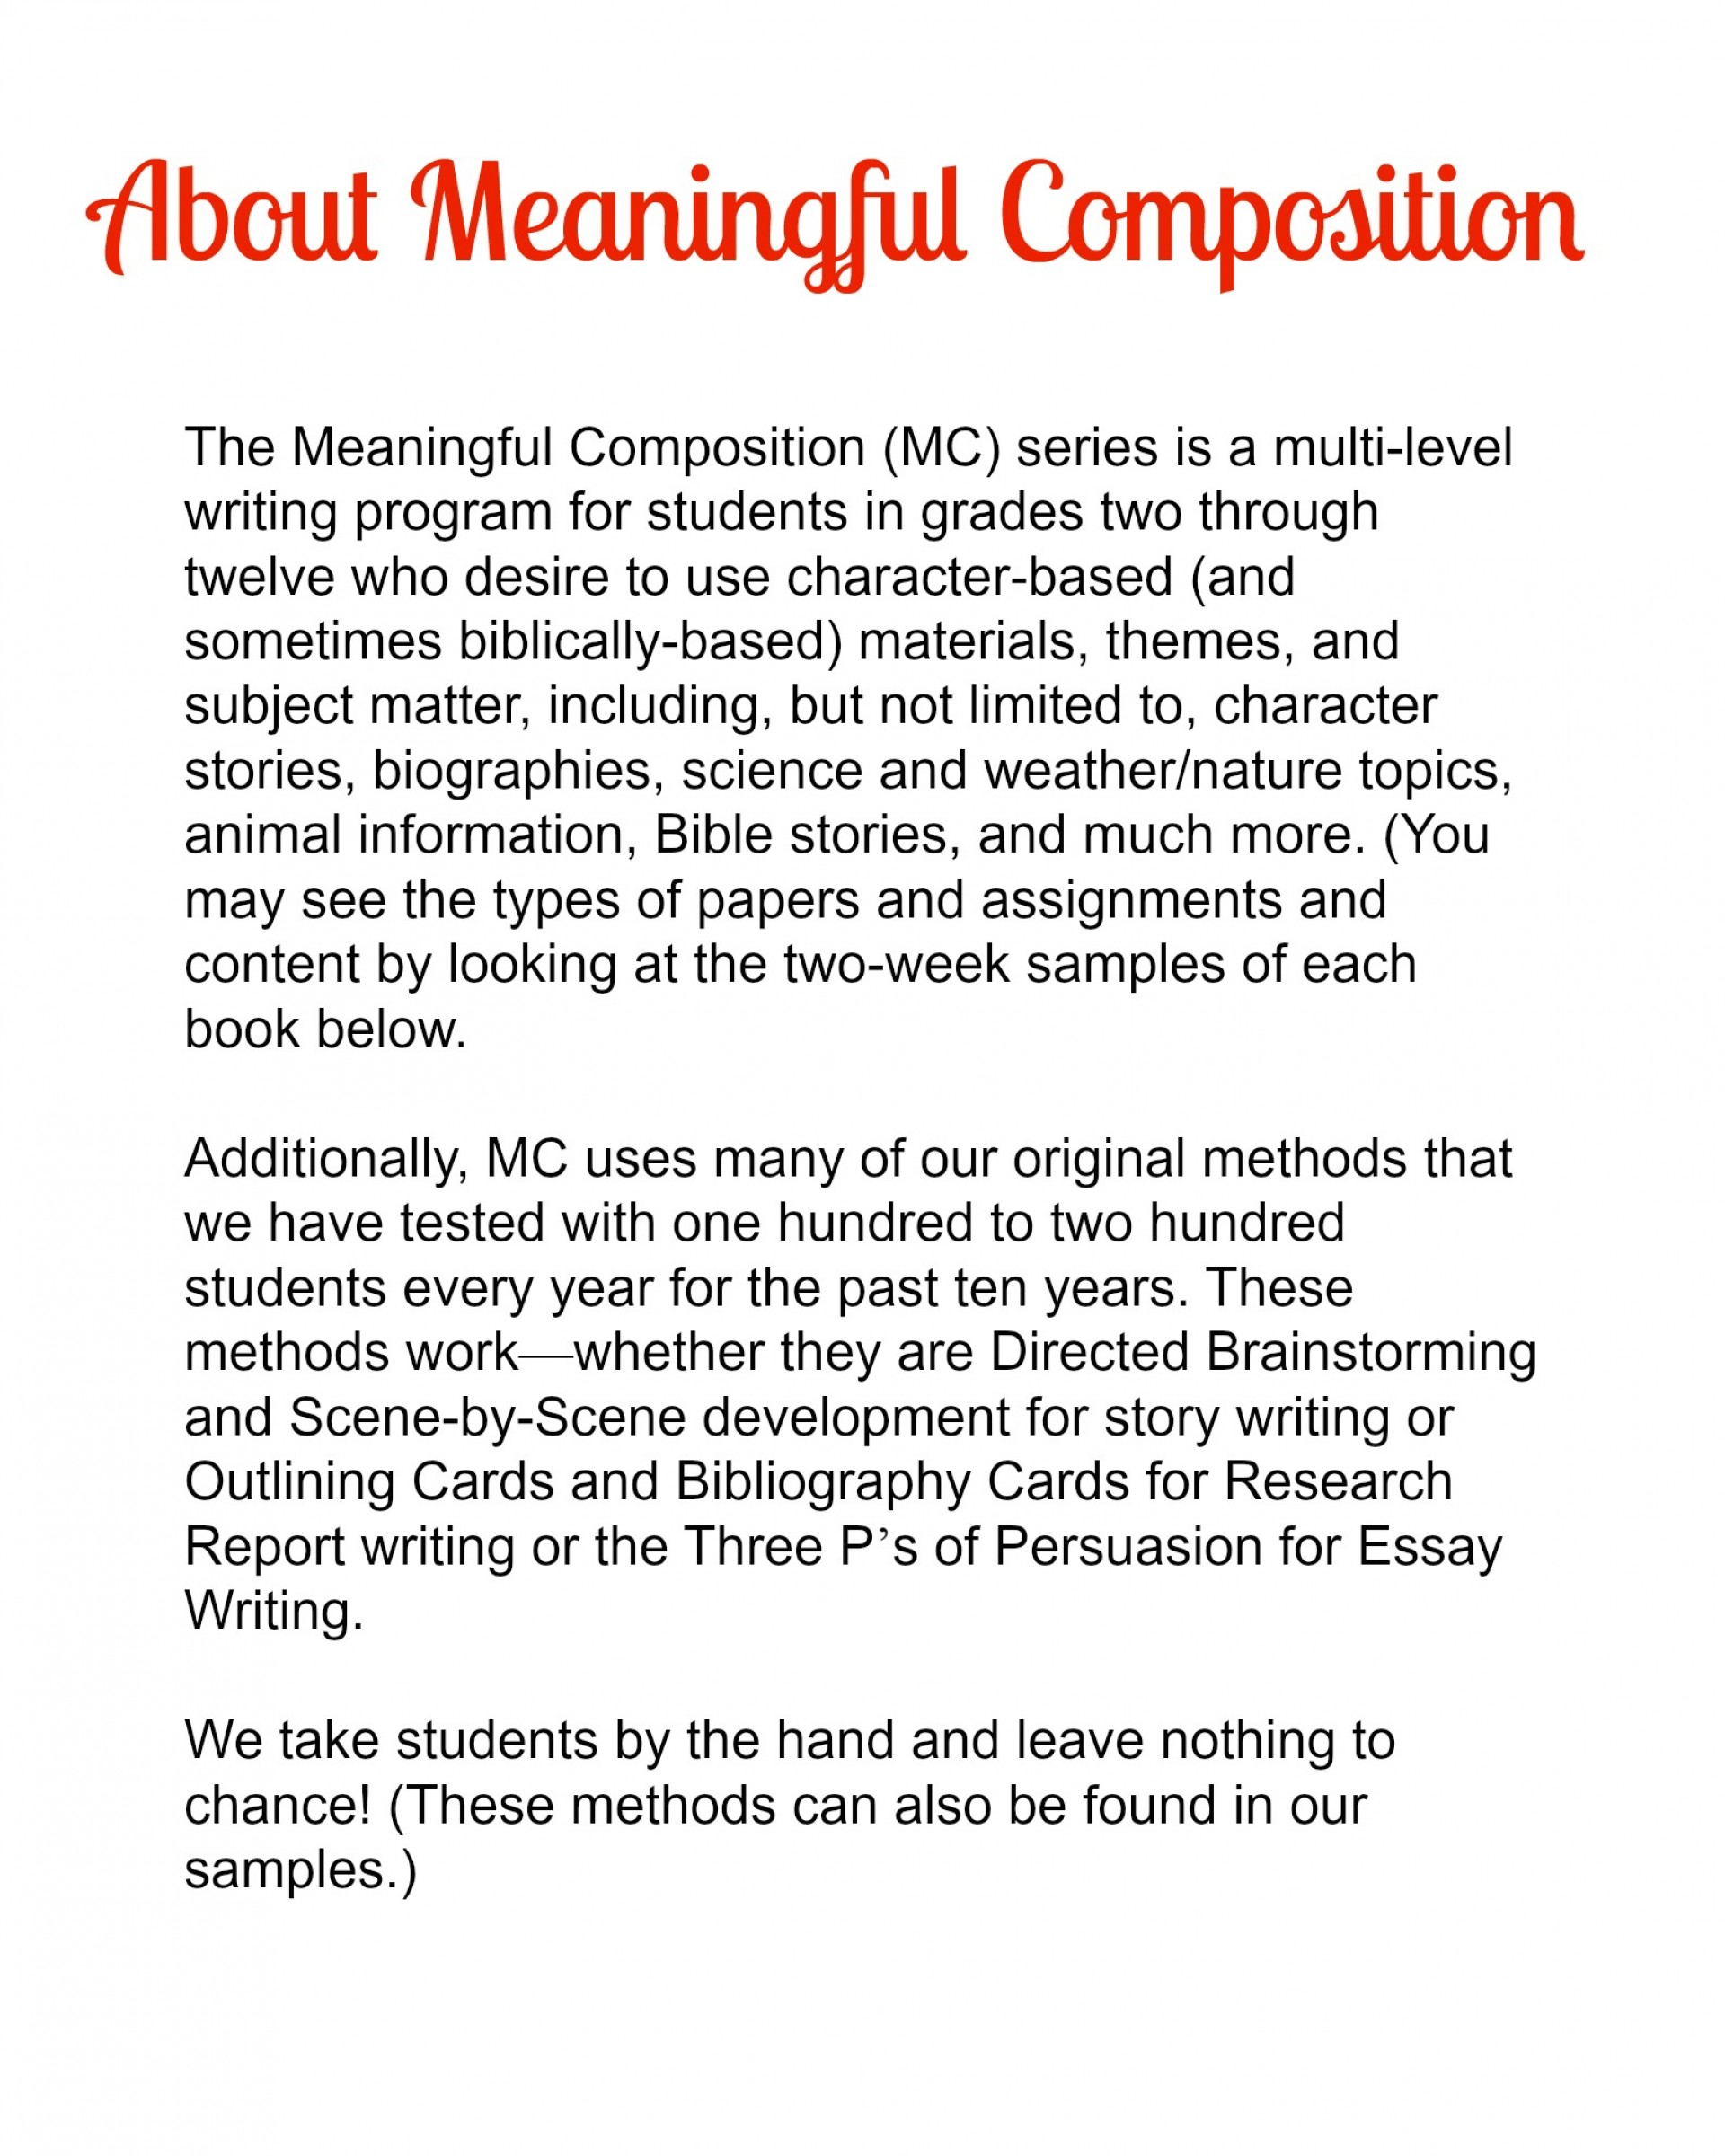 009 Help Writing Composition Argumentative Essay Example About Genetic Striking Engineering Disadvantages Of On Human Persuasive 1920